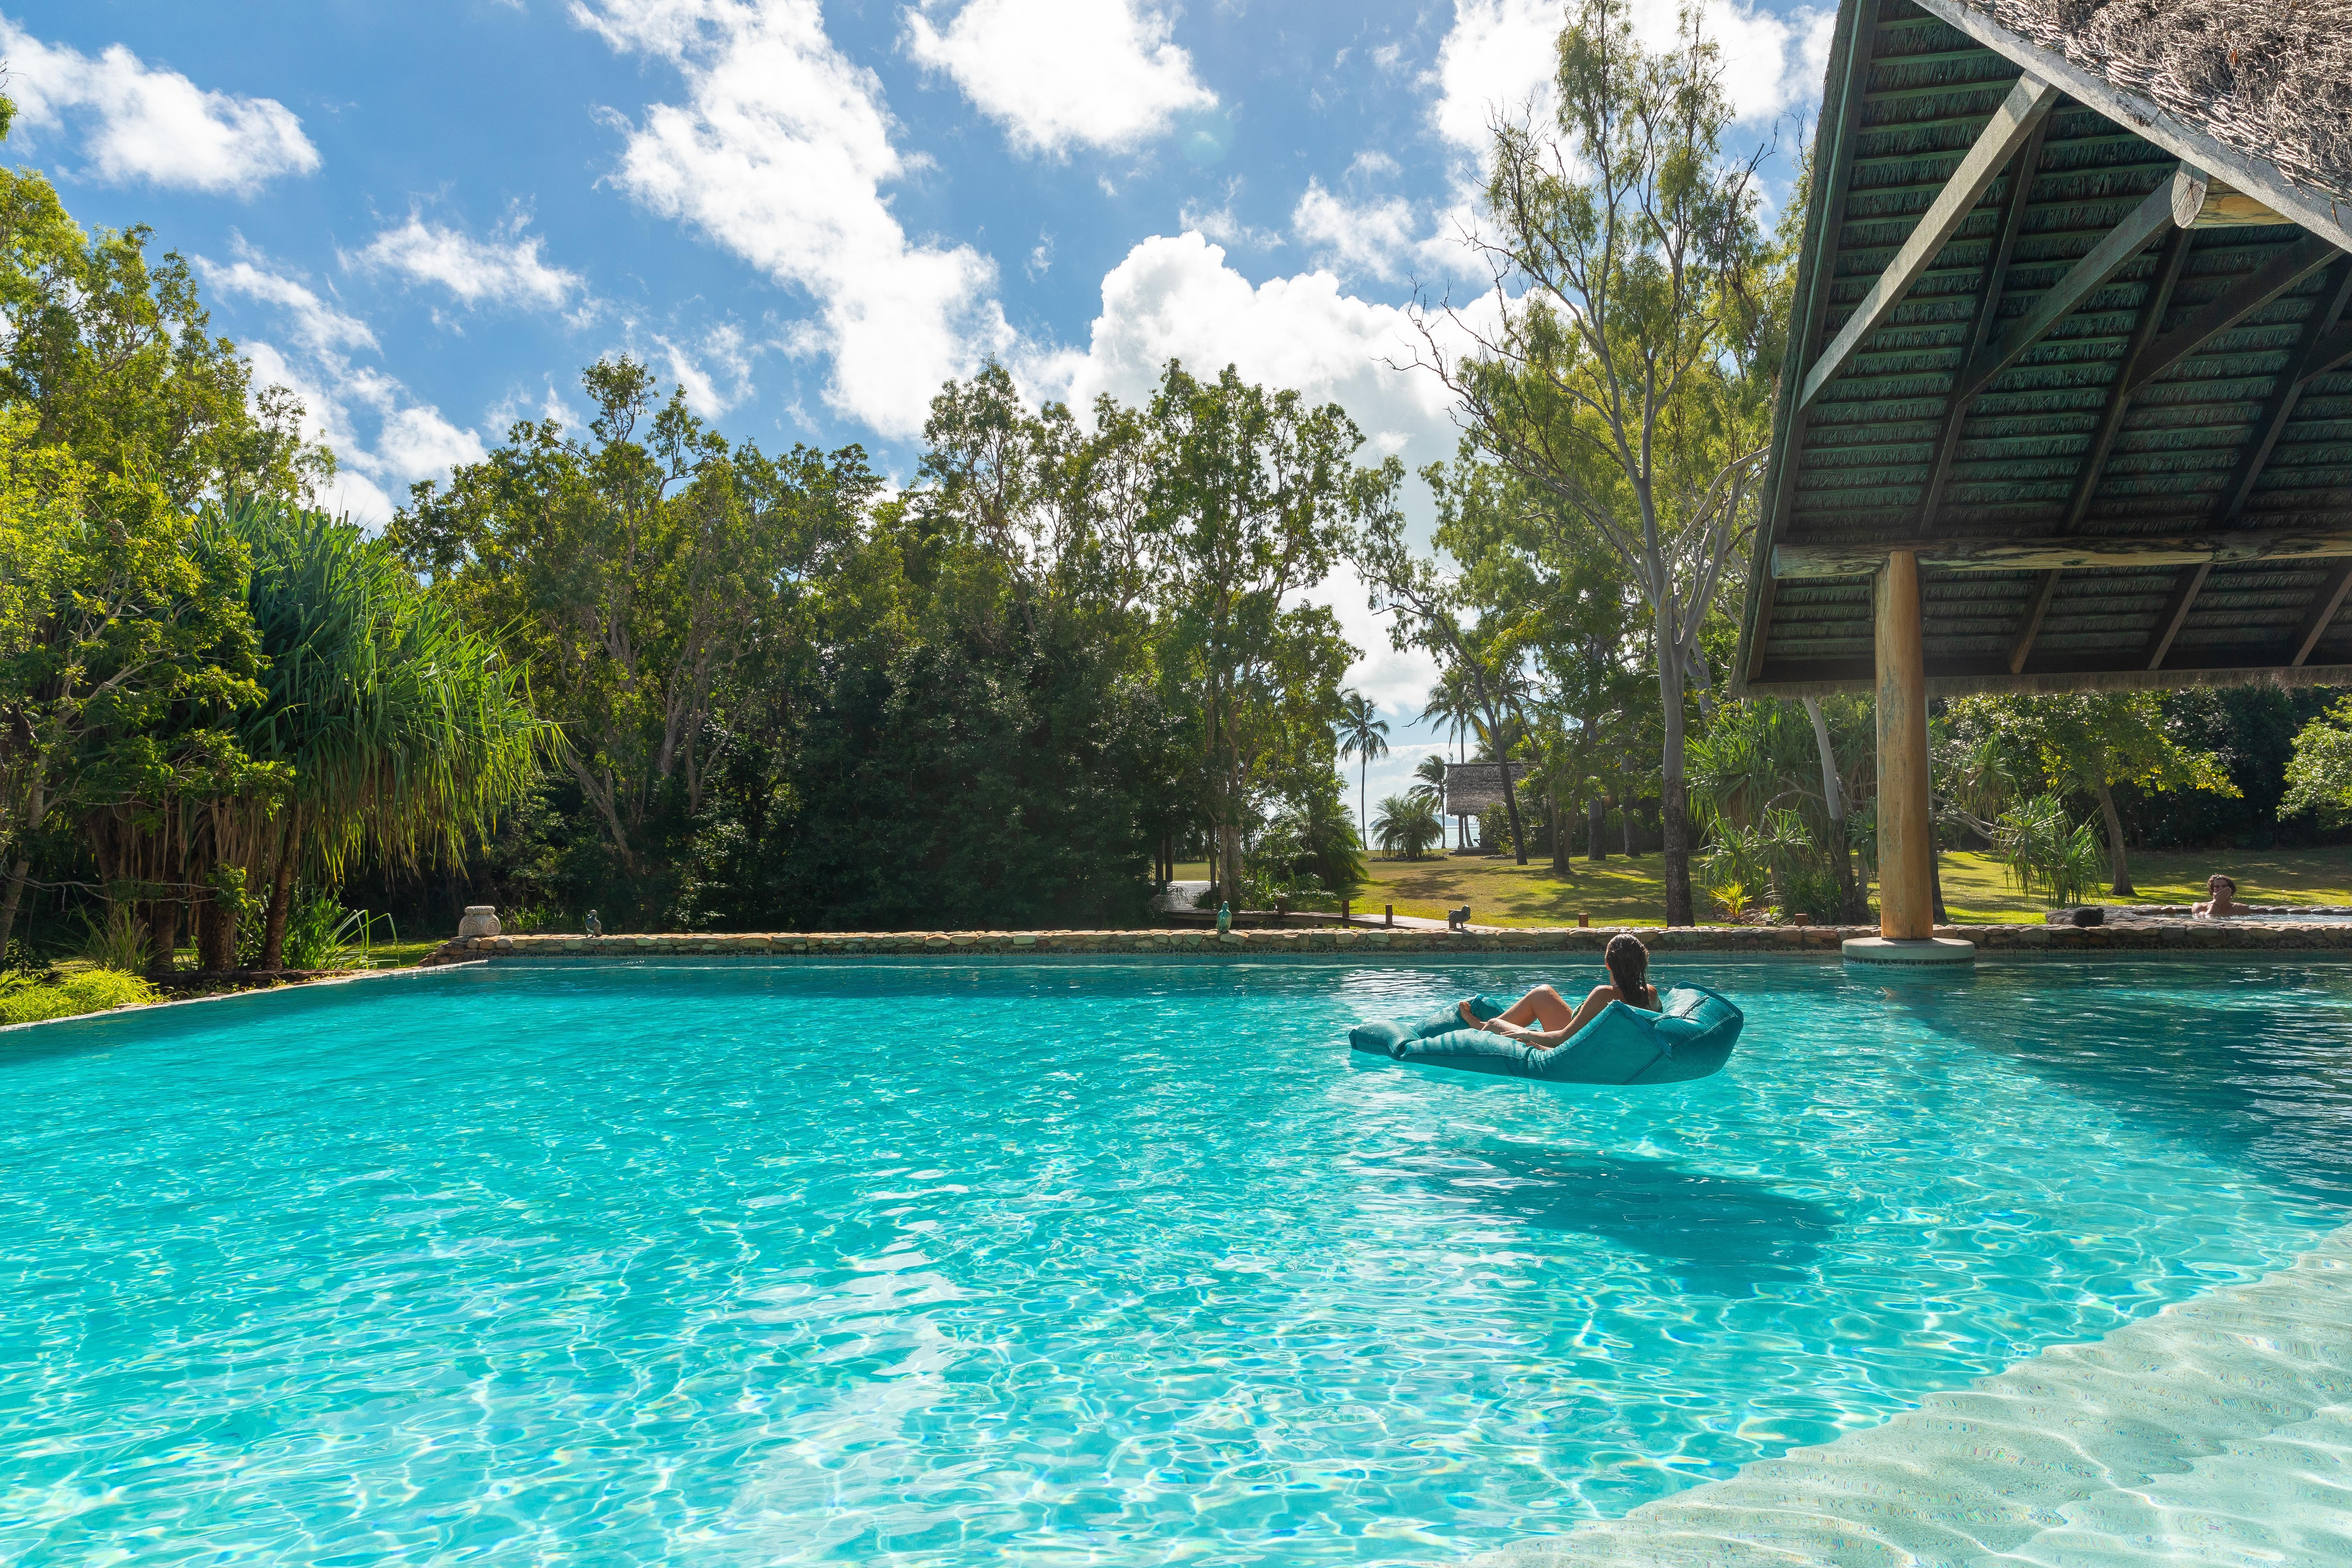 How to Spend 2 Days in Airlie Beach